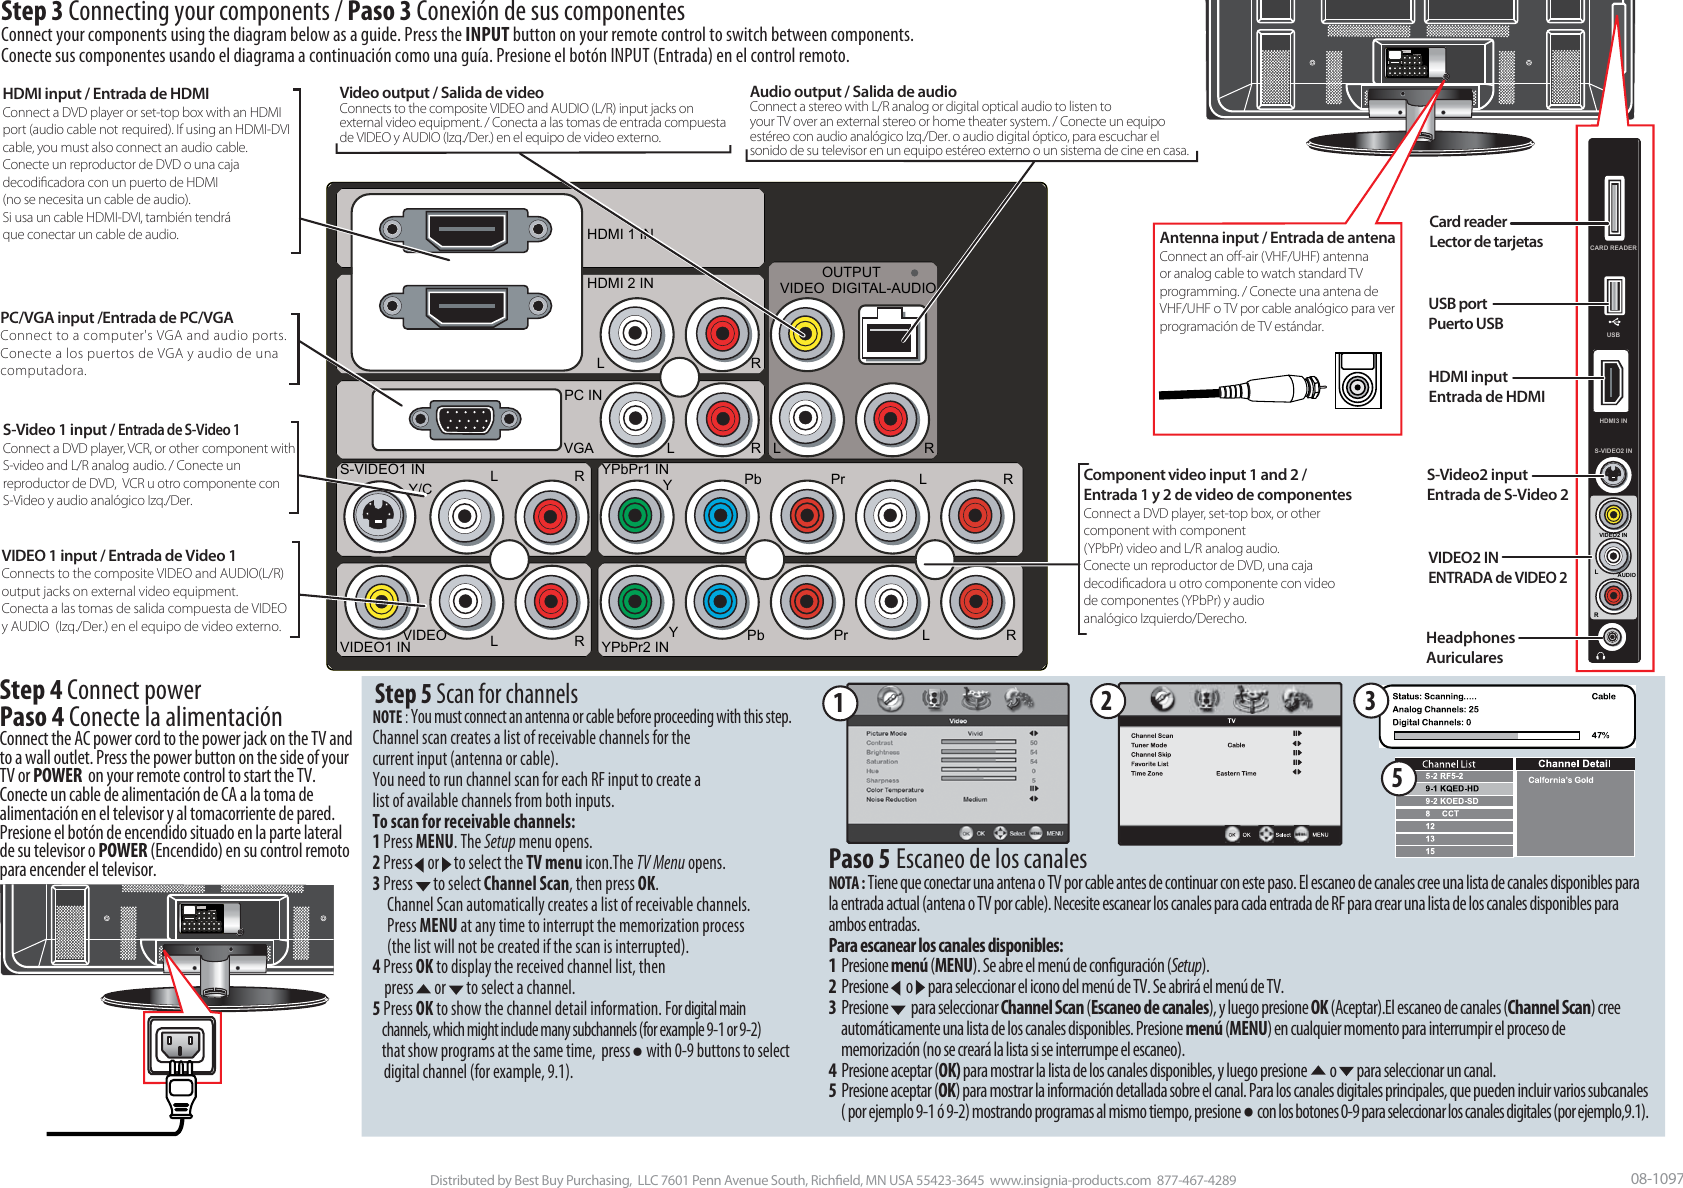 Insignia Ns Pdp50Hd 09 Users Manual 07 413 LCD42 QSG